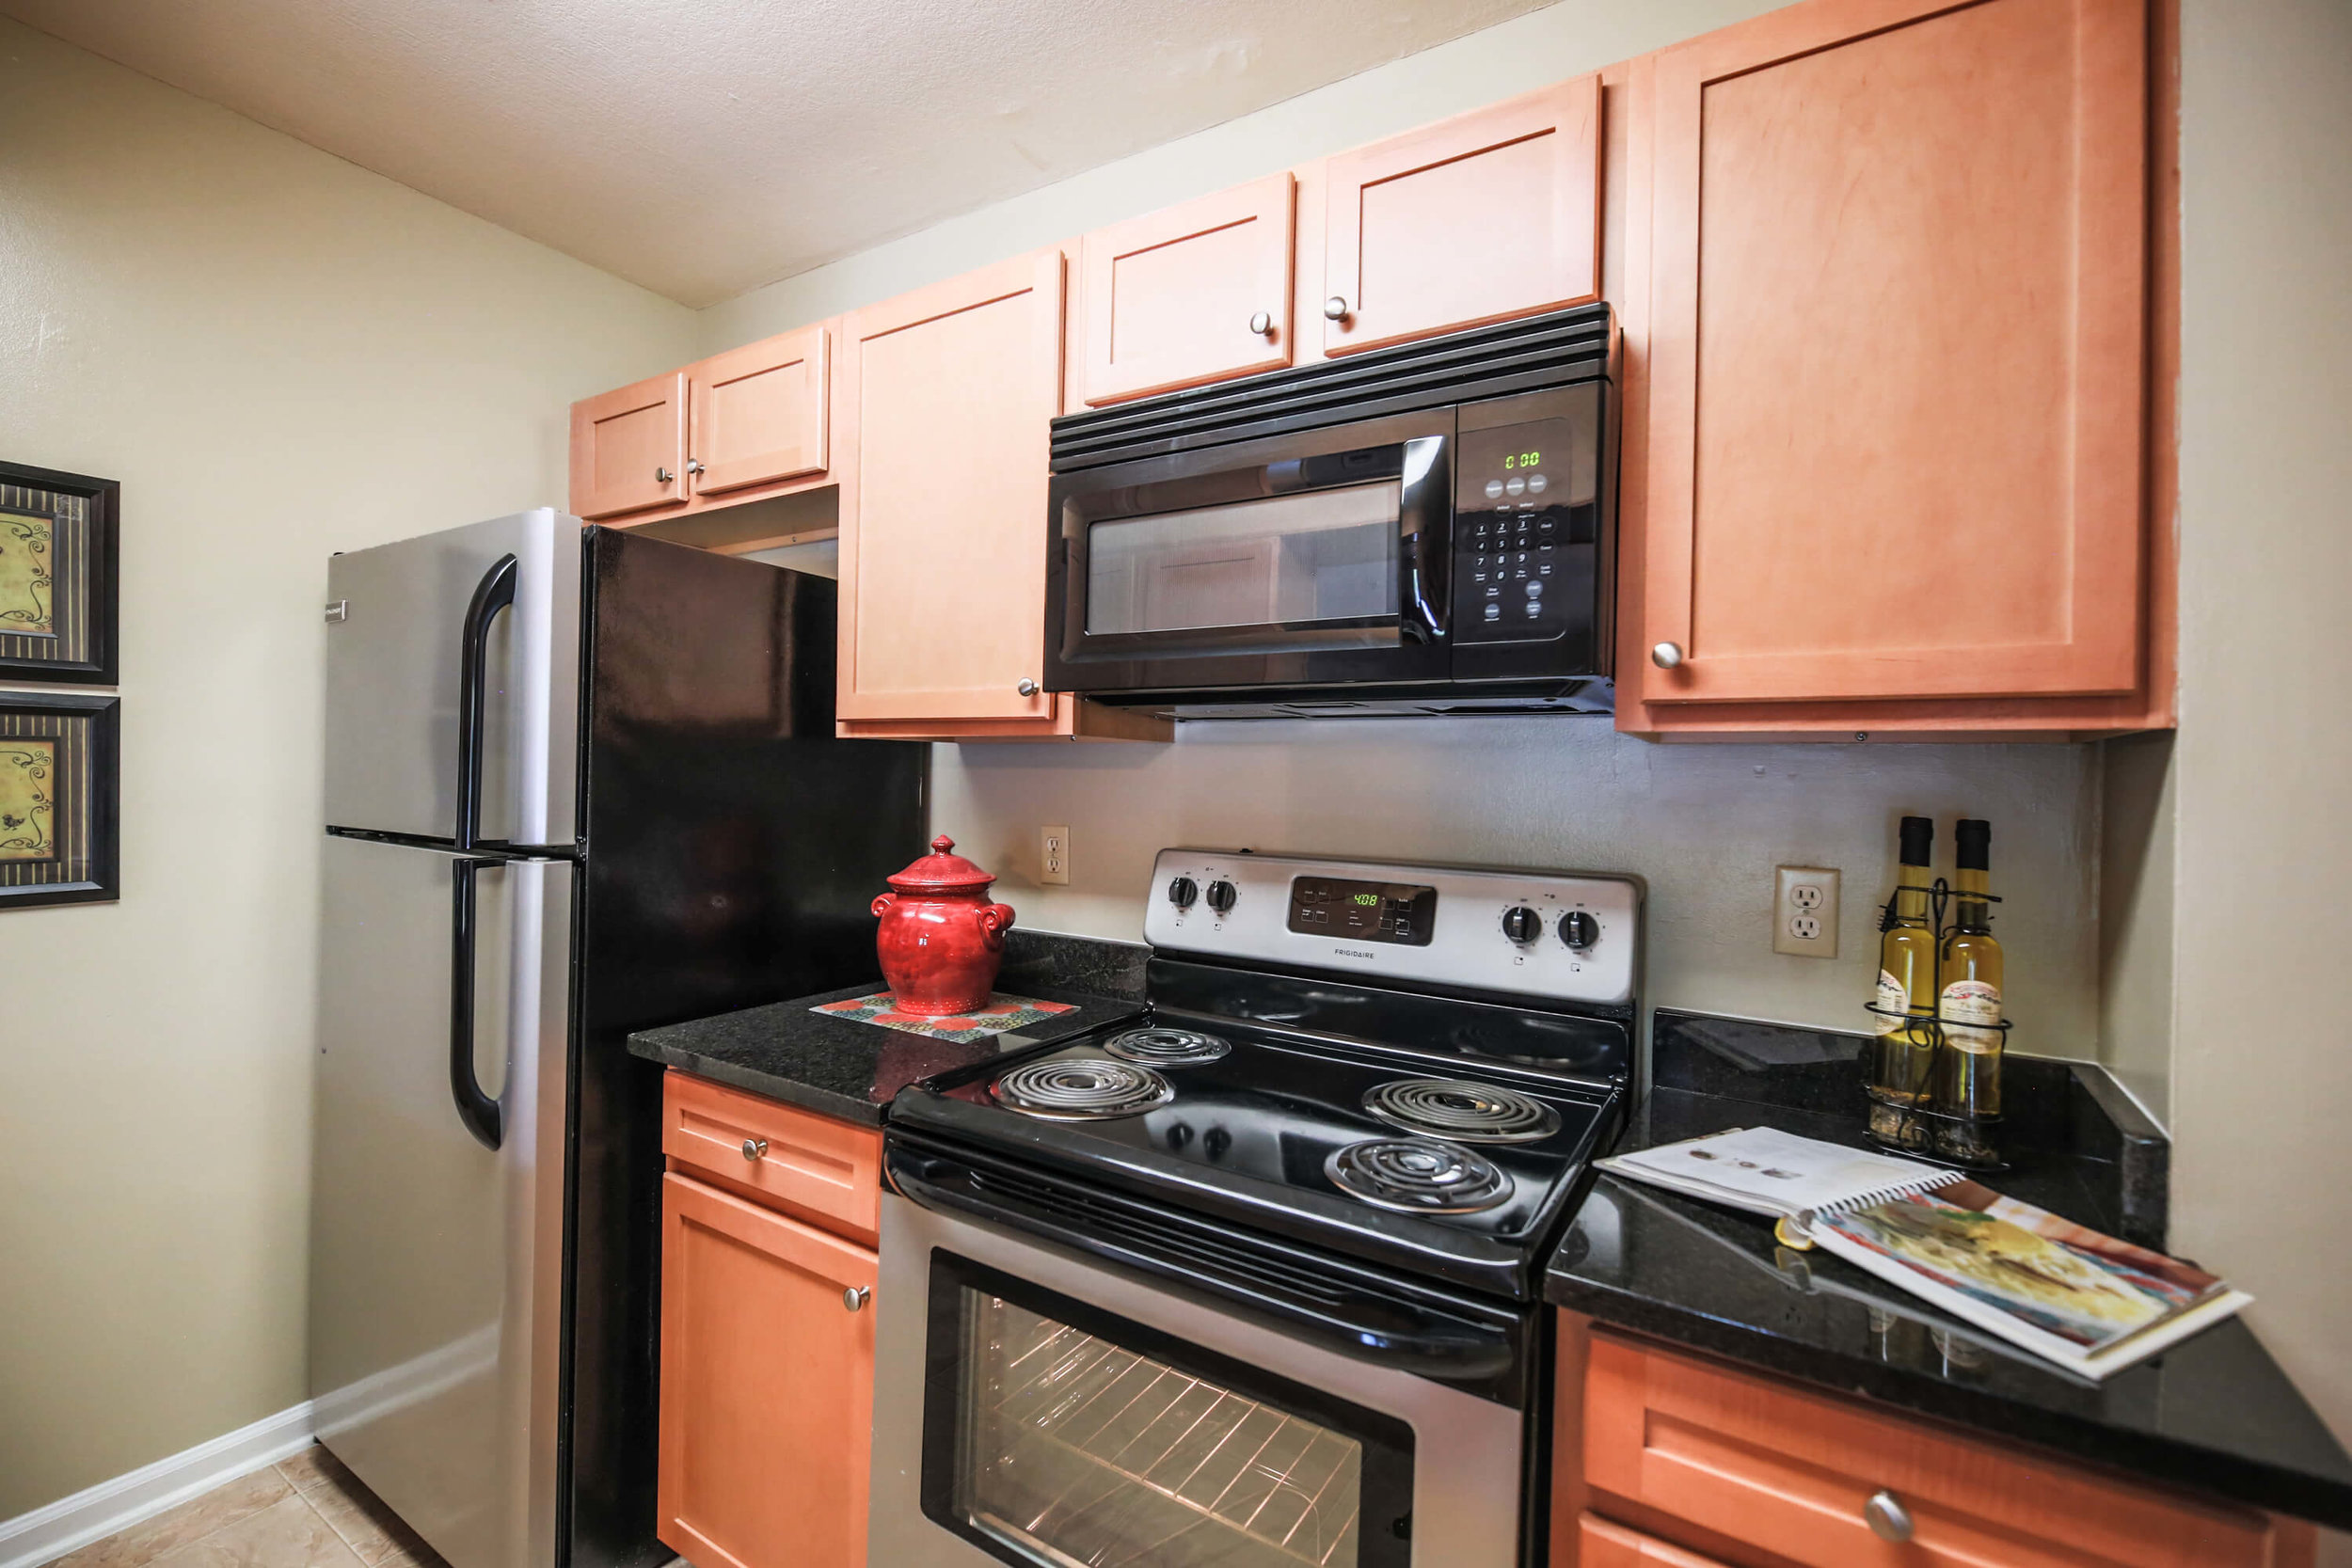 Apartments feature beautiful black granite countertops and new silver and black appliances.